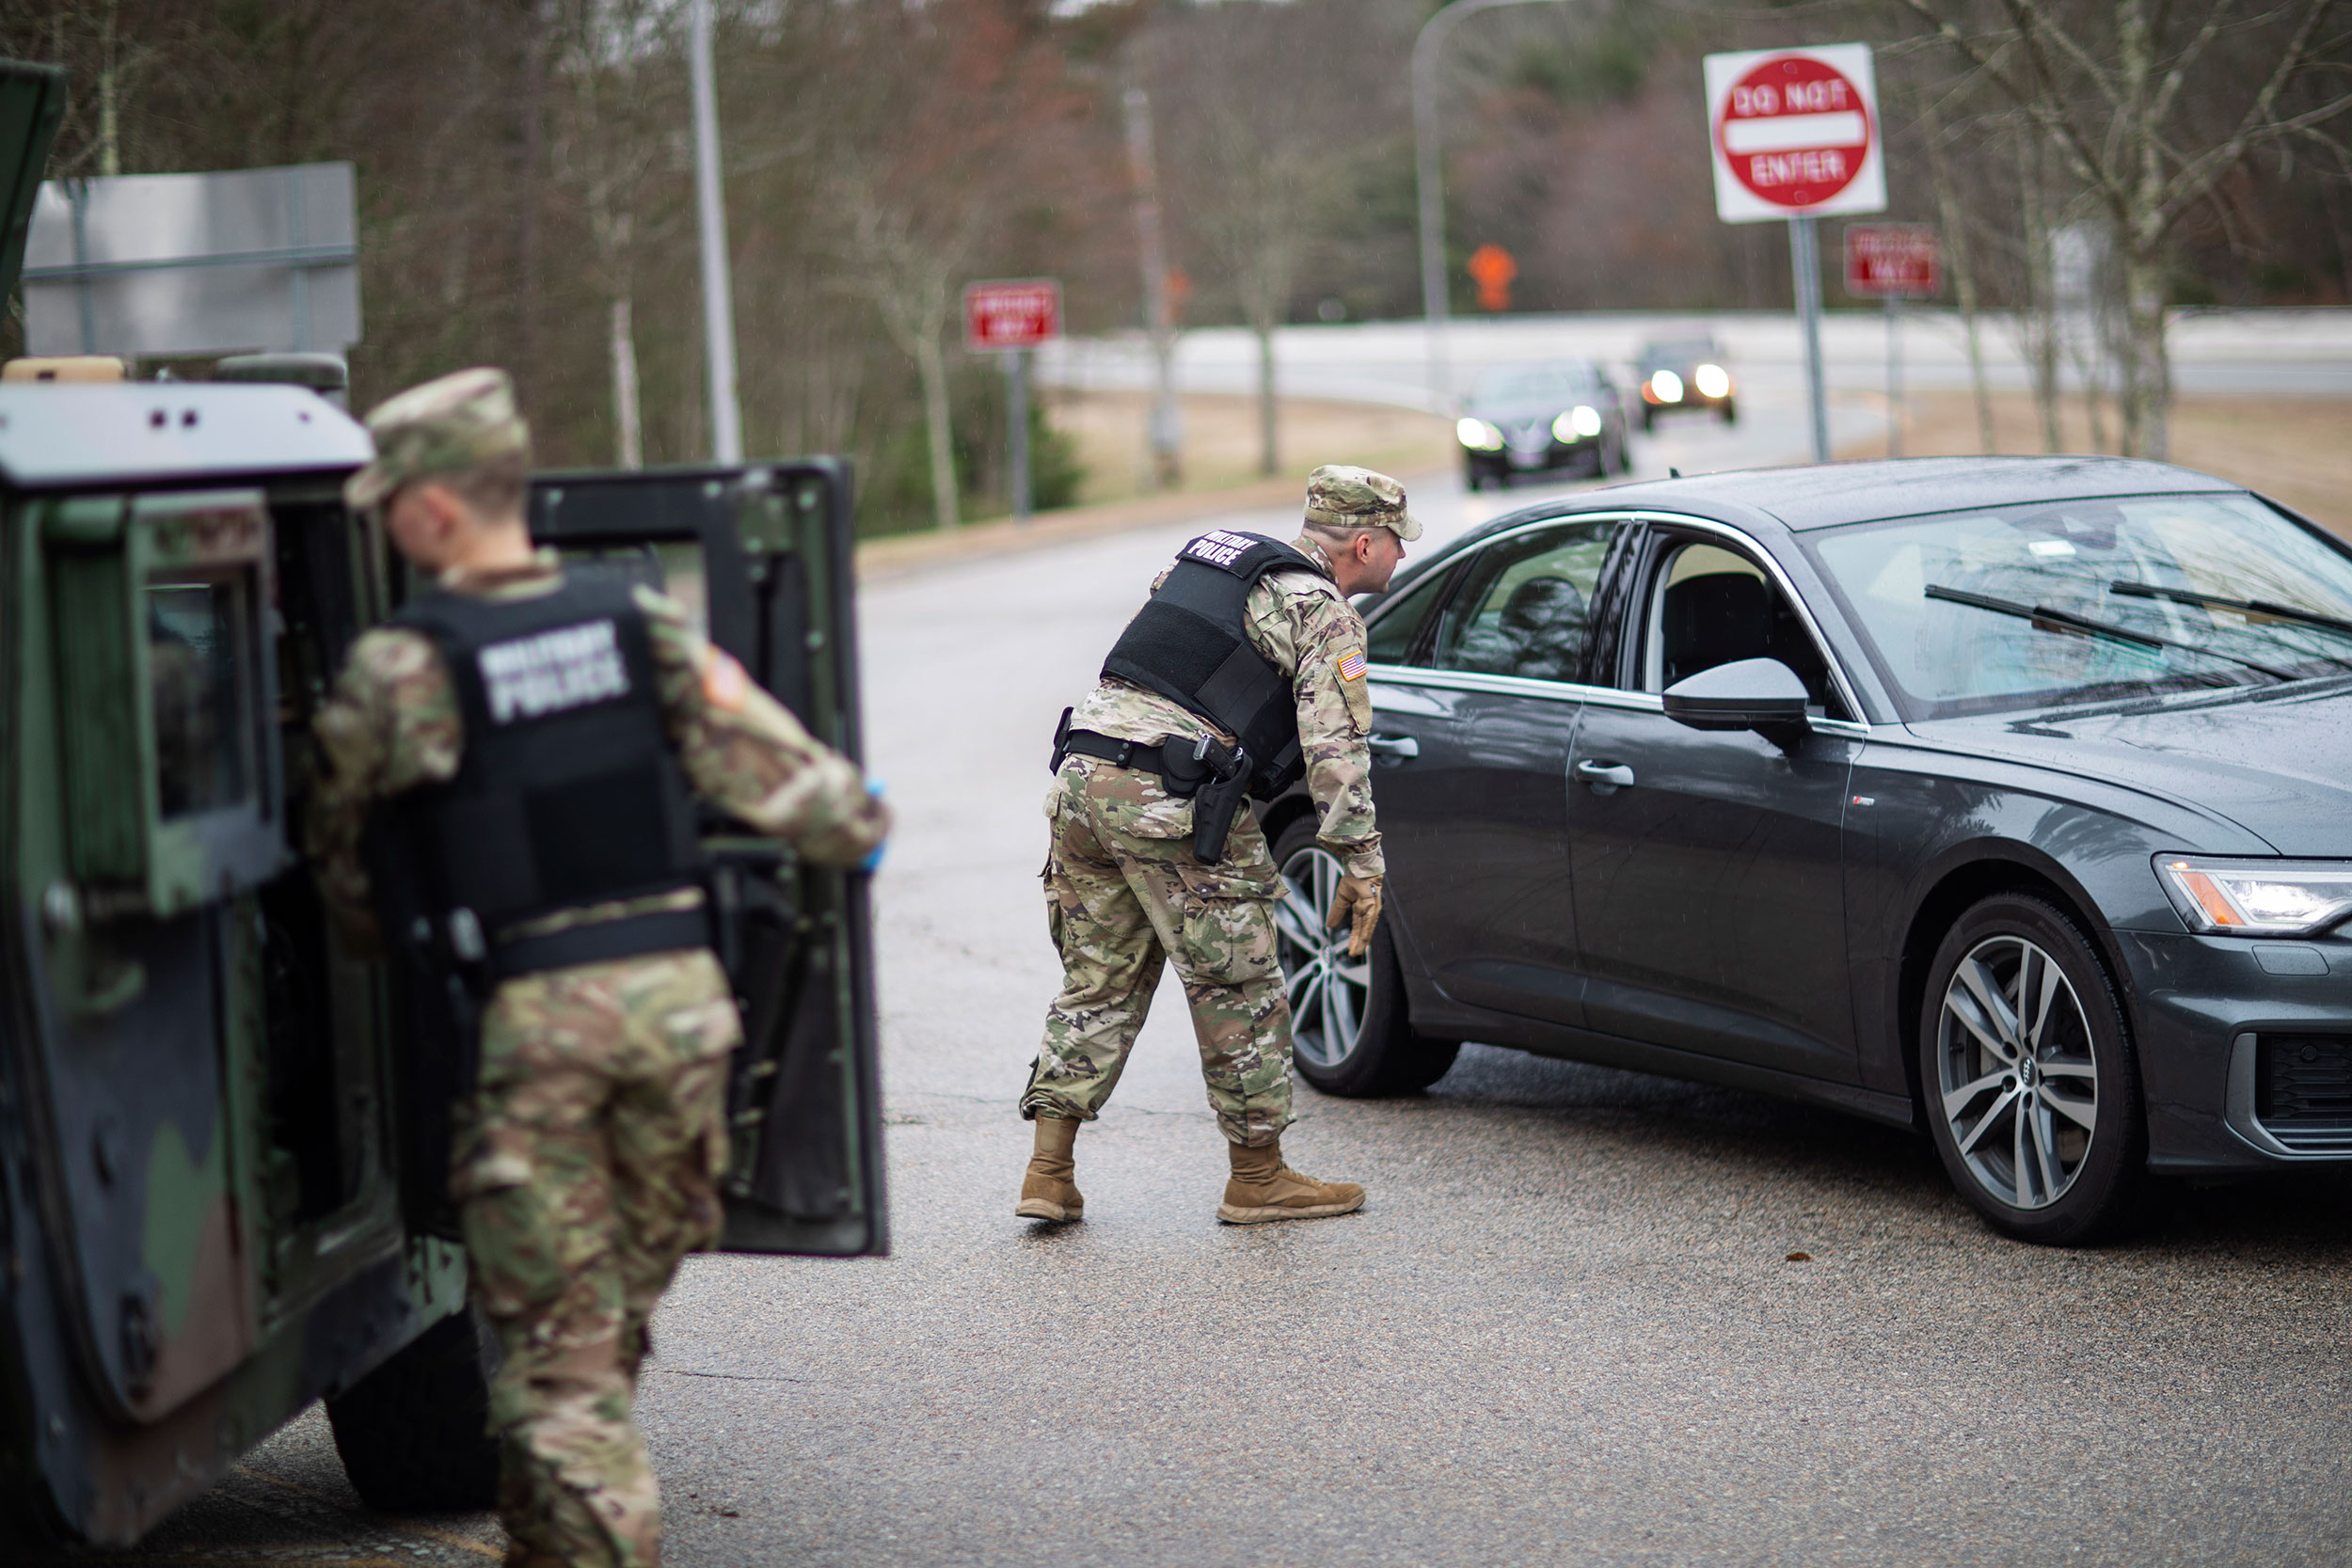 A member of the Rhode Island National Guard Military Police directs a motorist with New York license plates at a checkpoint on the border of Connecticut and Hope Valley, Rhode Island on March 28. New Yorkers had to pull over and provide contact information and were told to self-quarantine for two weeks.